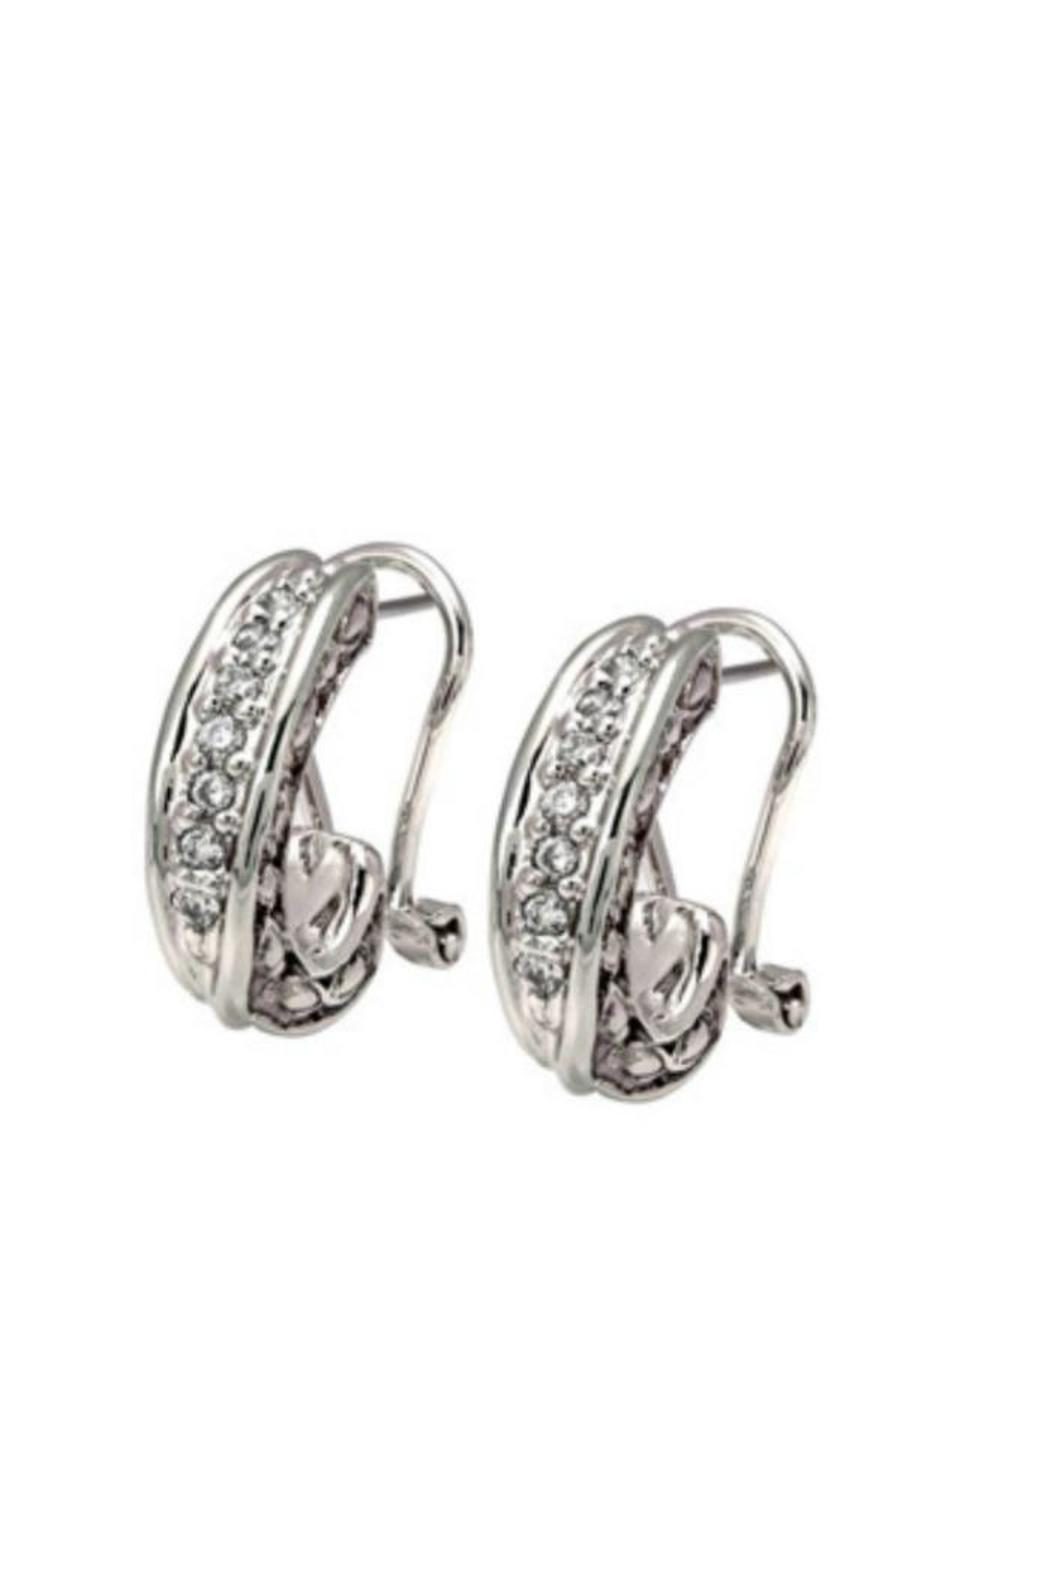 JOHN MEDEIROS Pave Post-Clip Earrings - Main Image